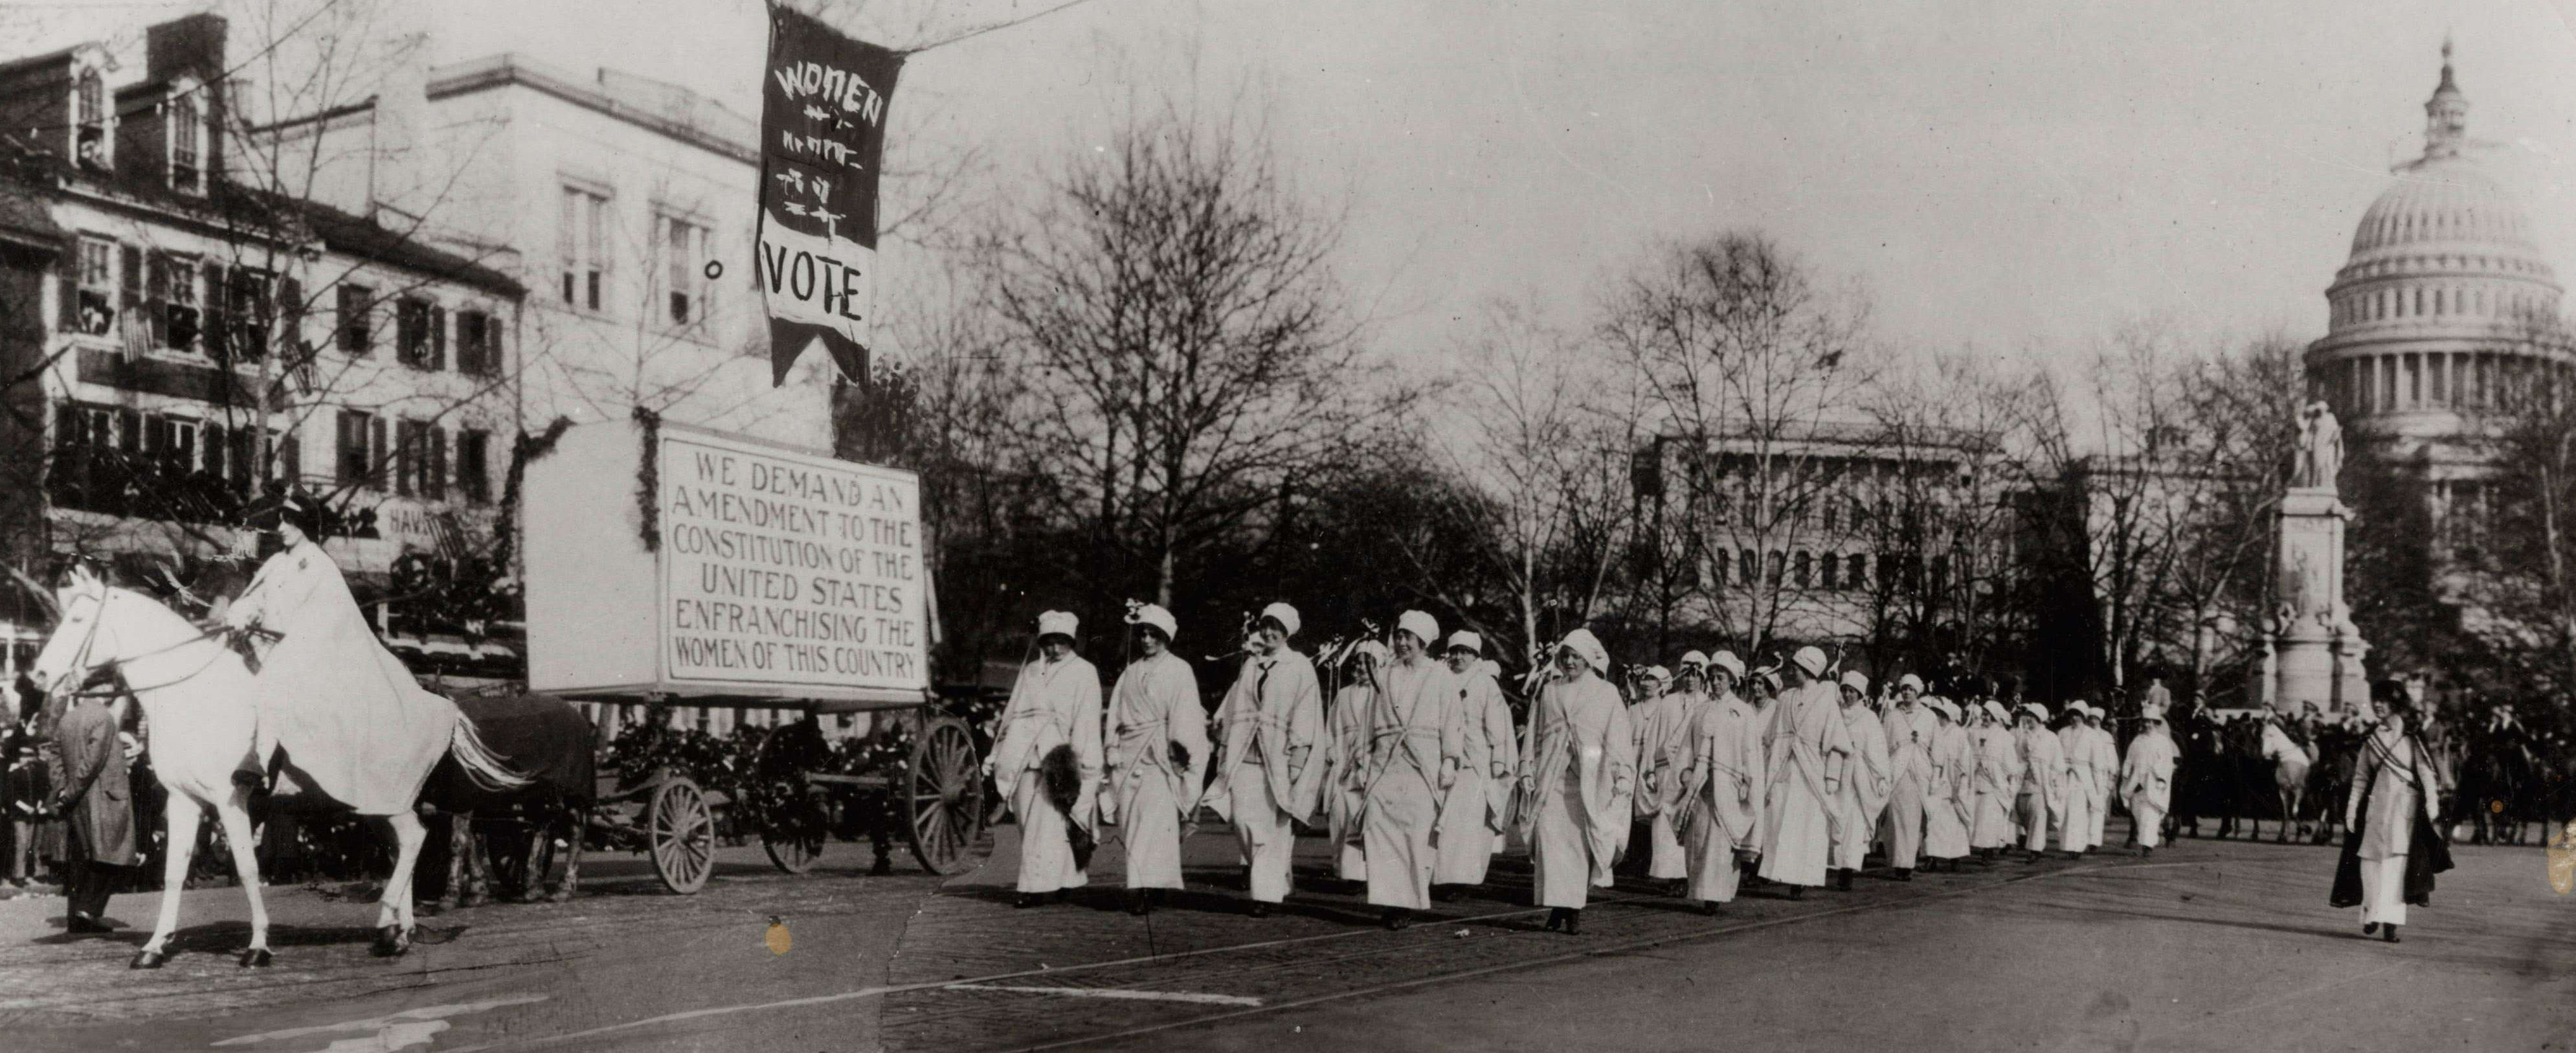 Women Marching in Suffrage Parade in Washington, DC, 1913